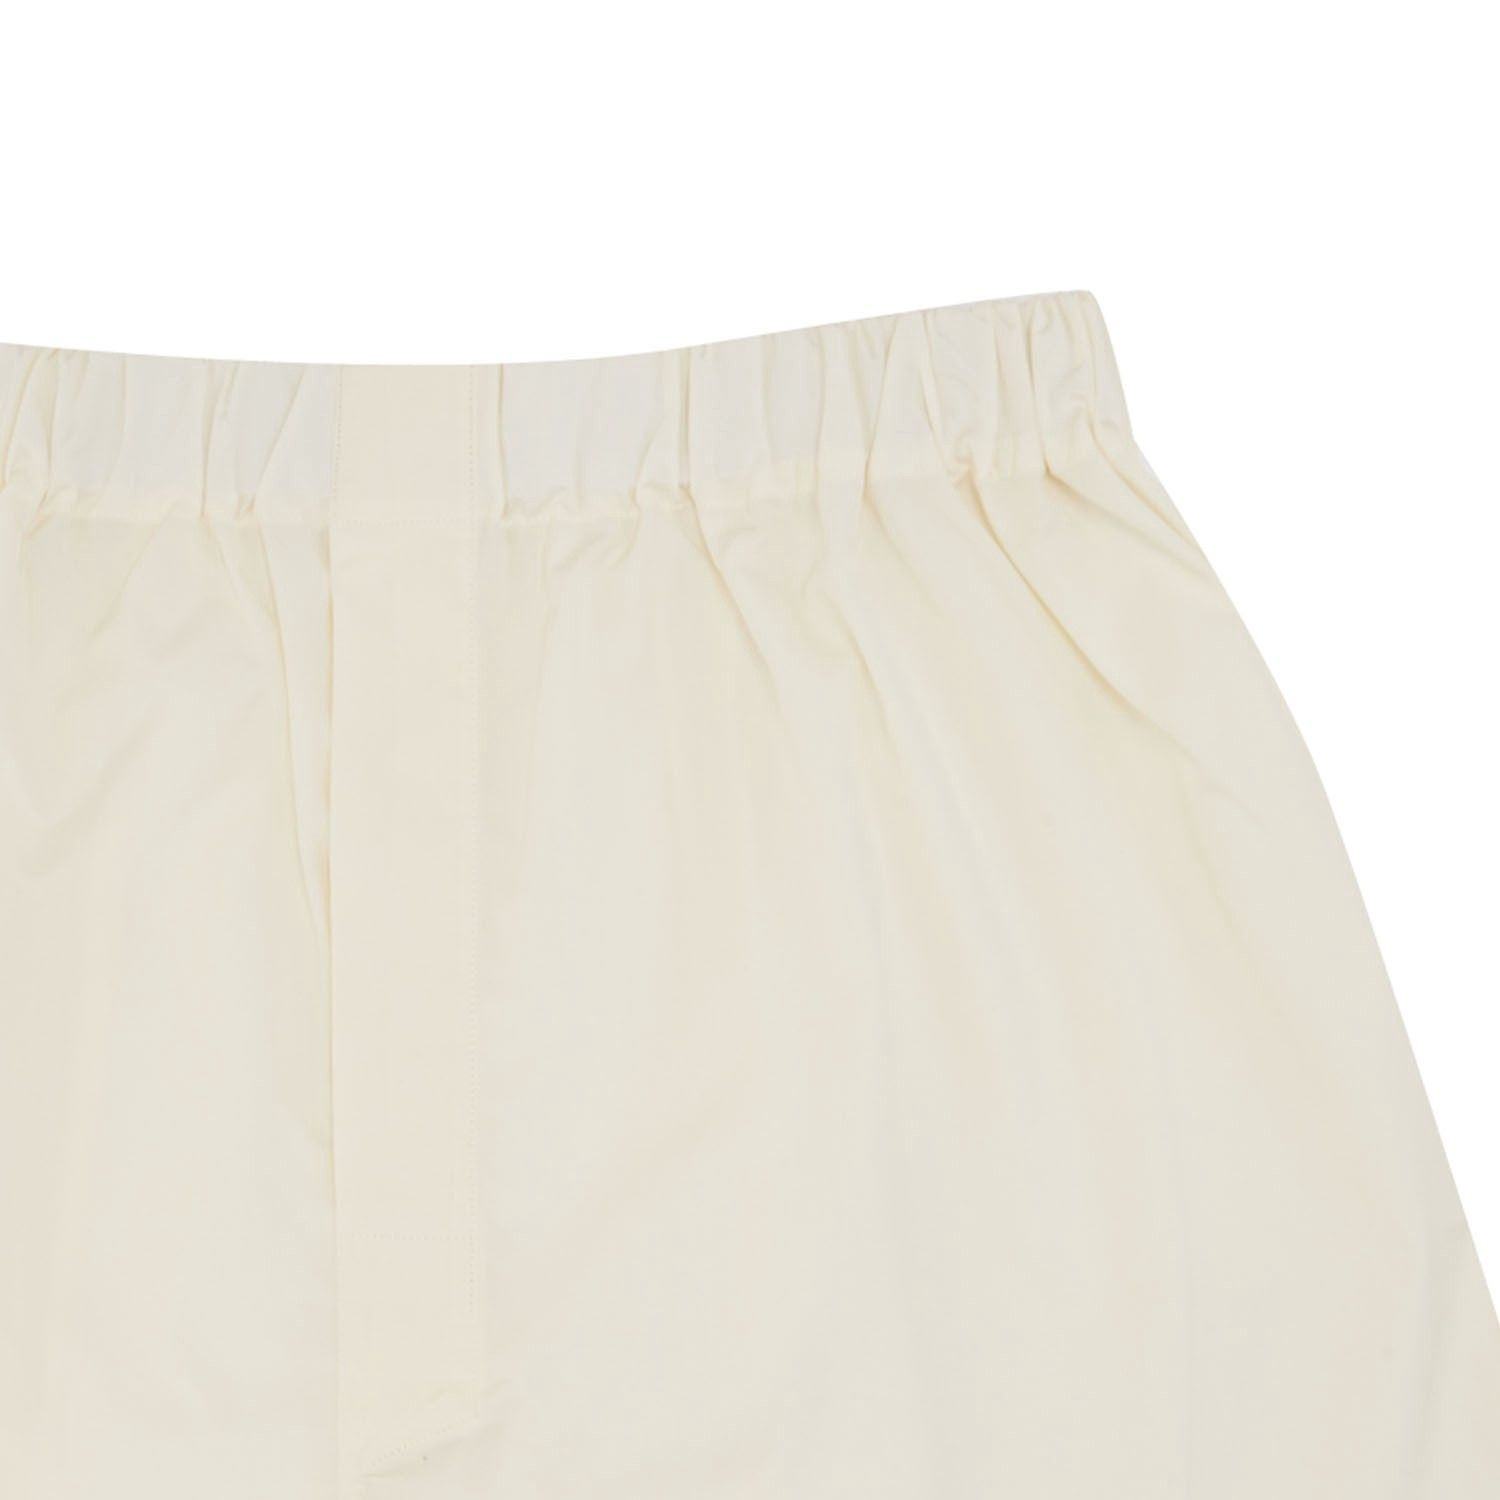 Turnbull Amp Asser Plain Cream Cotton Boxer Shorts